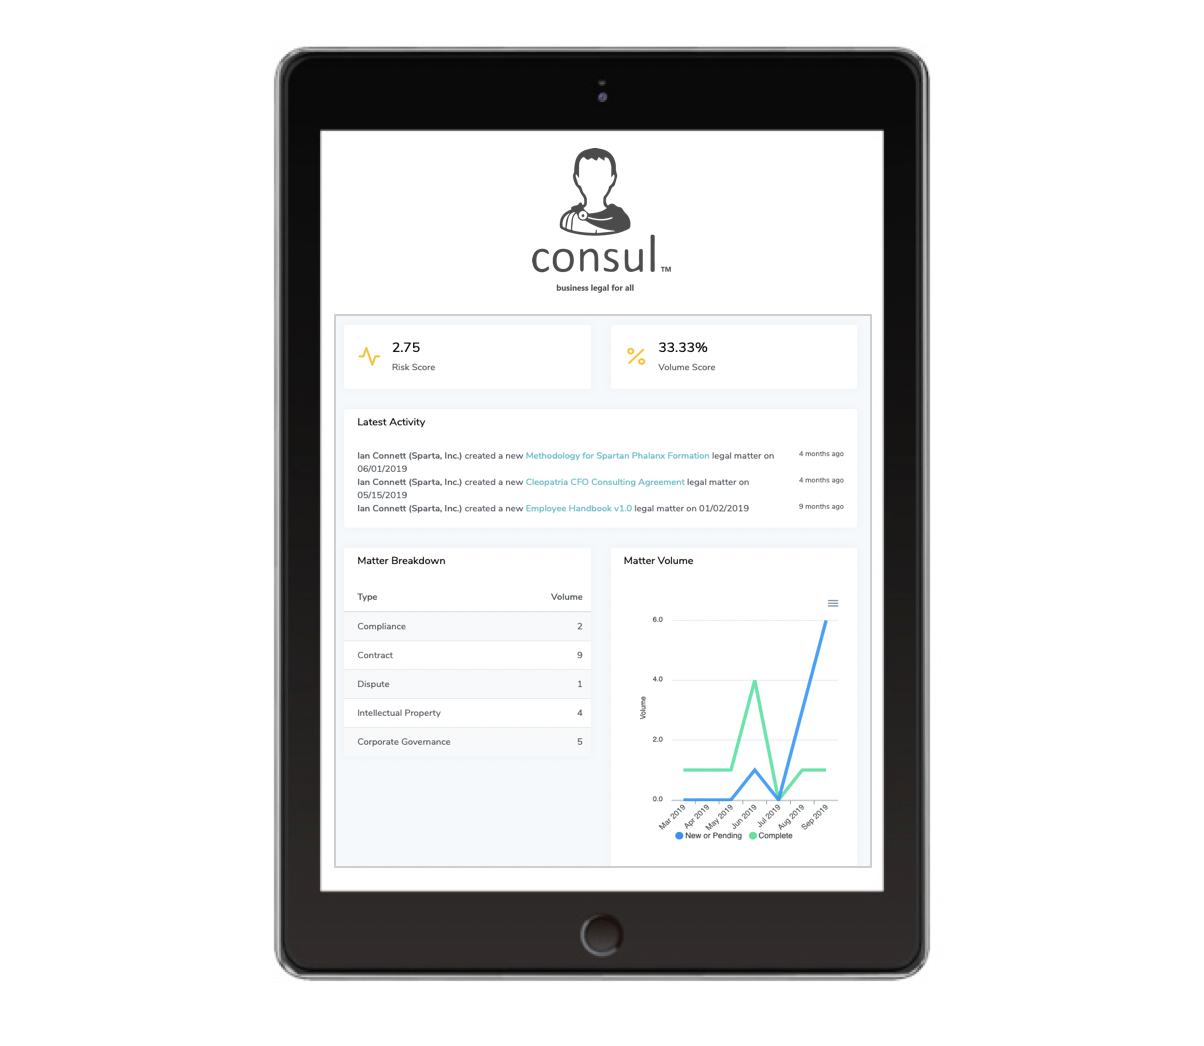 Smarter Legal. - Know the real time legal and compliance health of your organization. Track risk and legal ops performance through Consul™ Risk Score. Take command of legal data with easy .pdf reporting and analytics.